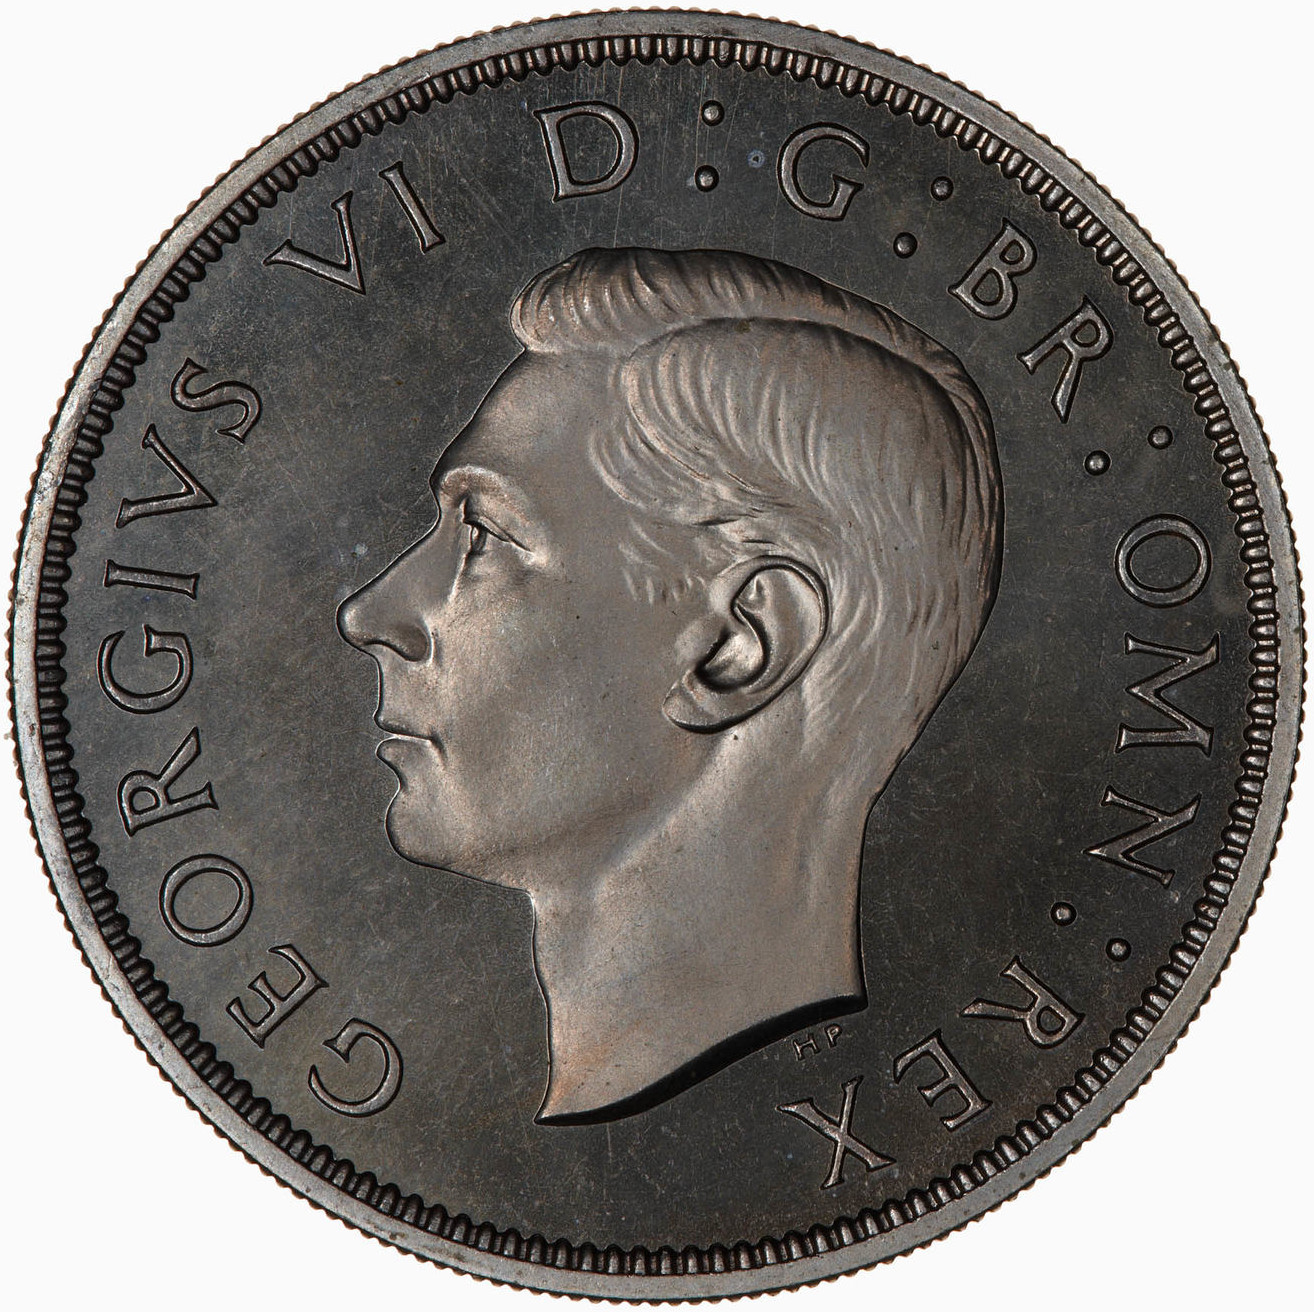 Two Shillings (Florin) 1947: Photo Proof Coin - Florin, George VI, Great Britain, 1947